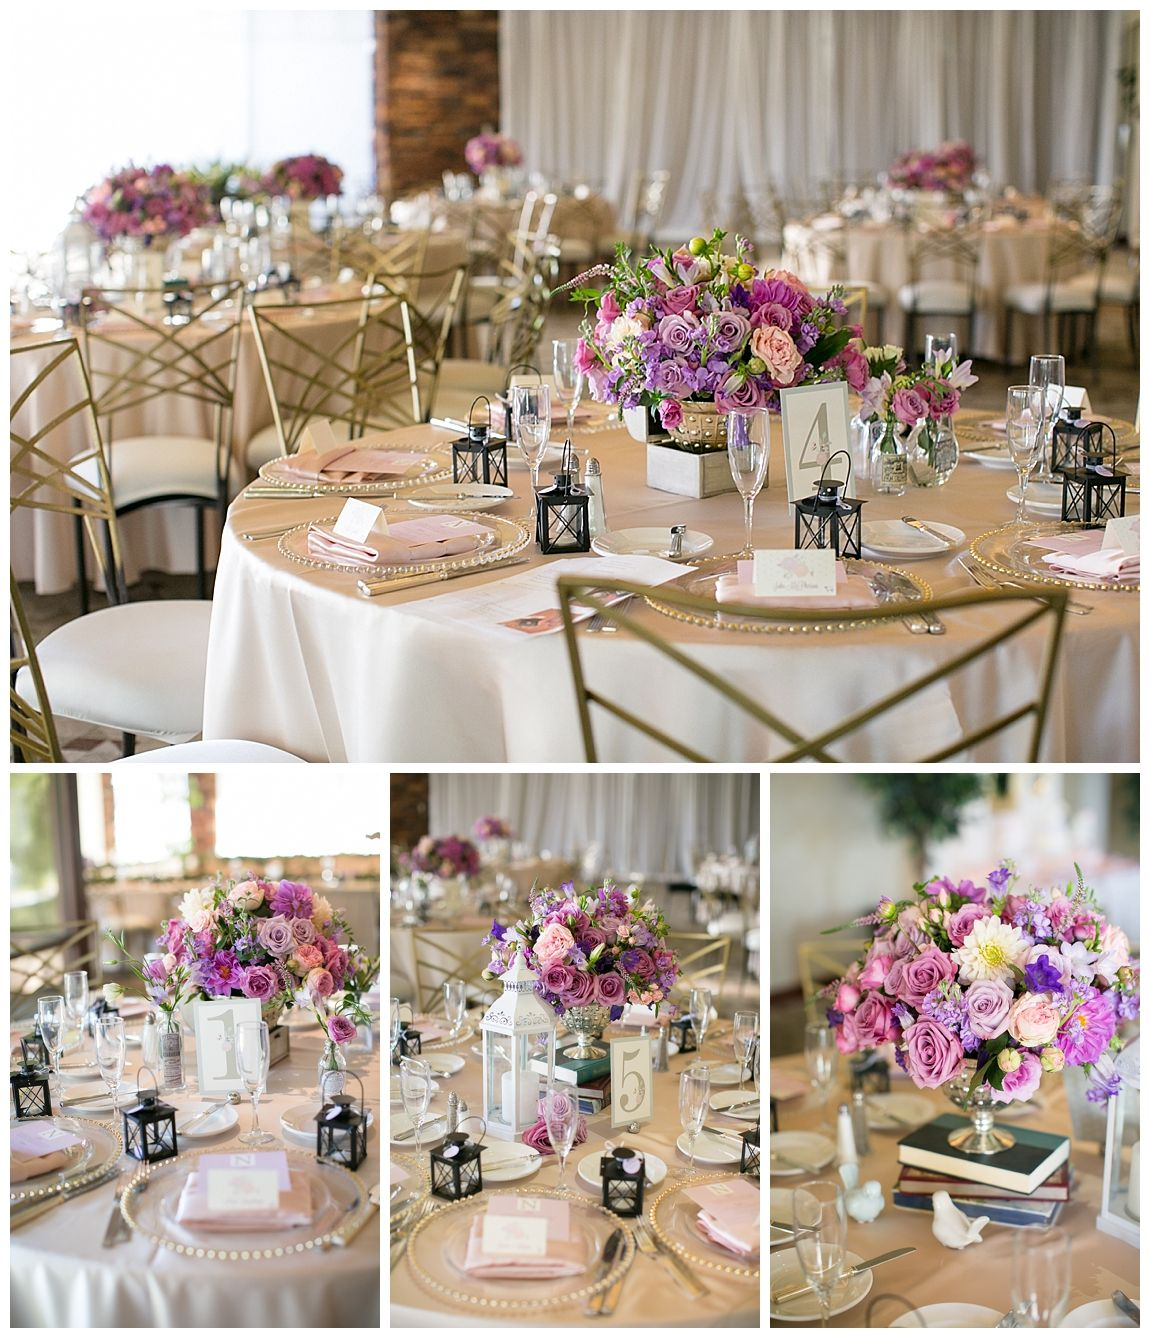 Low Pink And Purple Wedding Centerpieces At Wedding